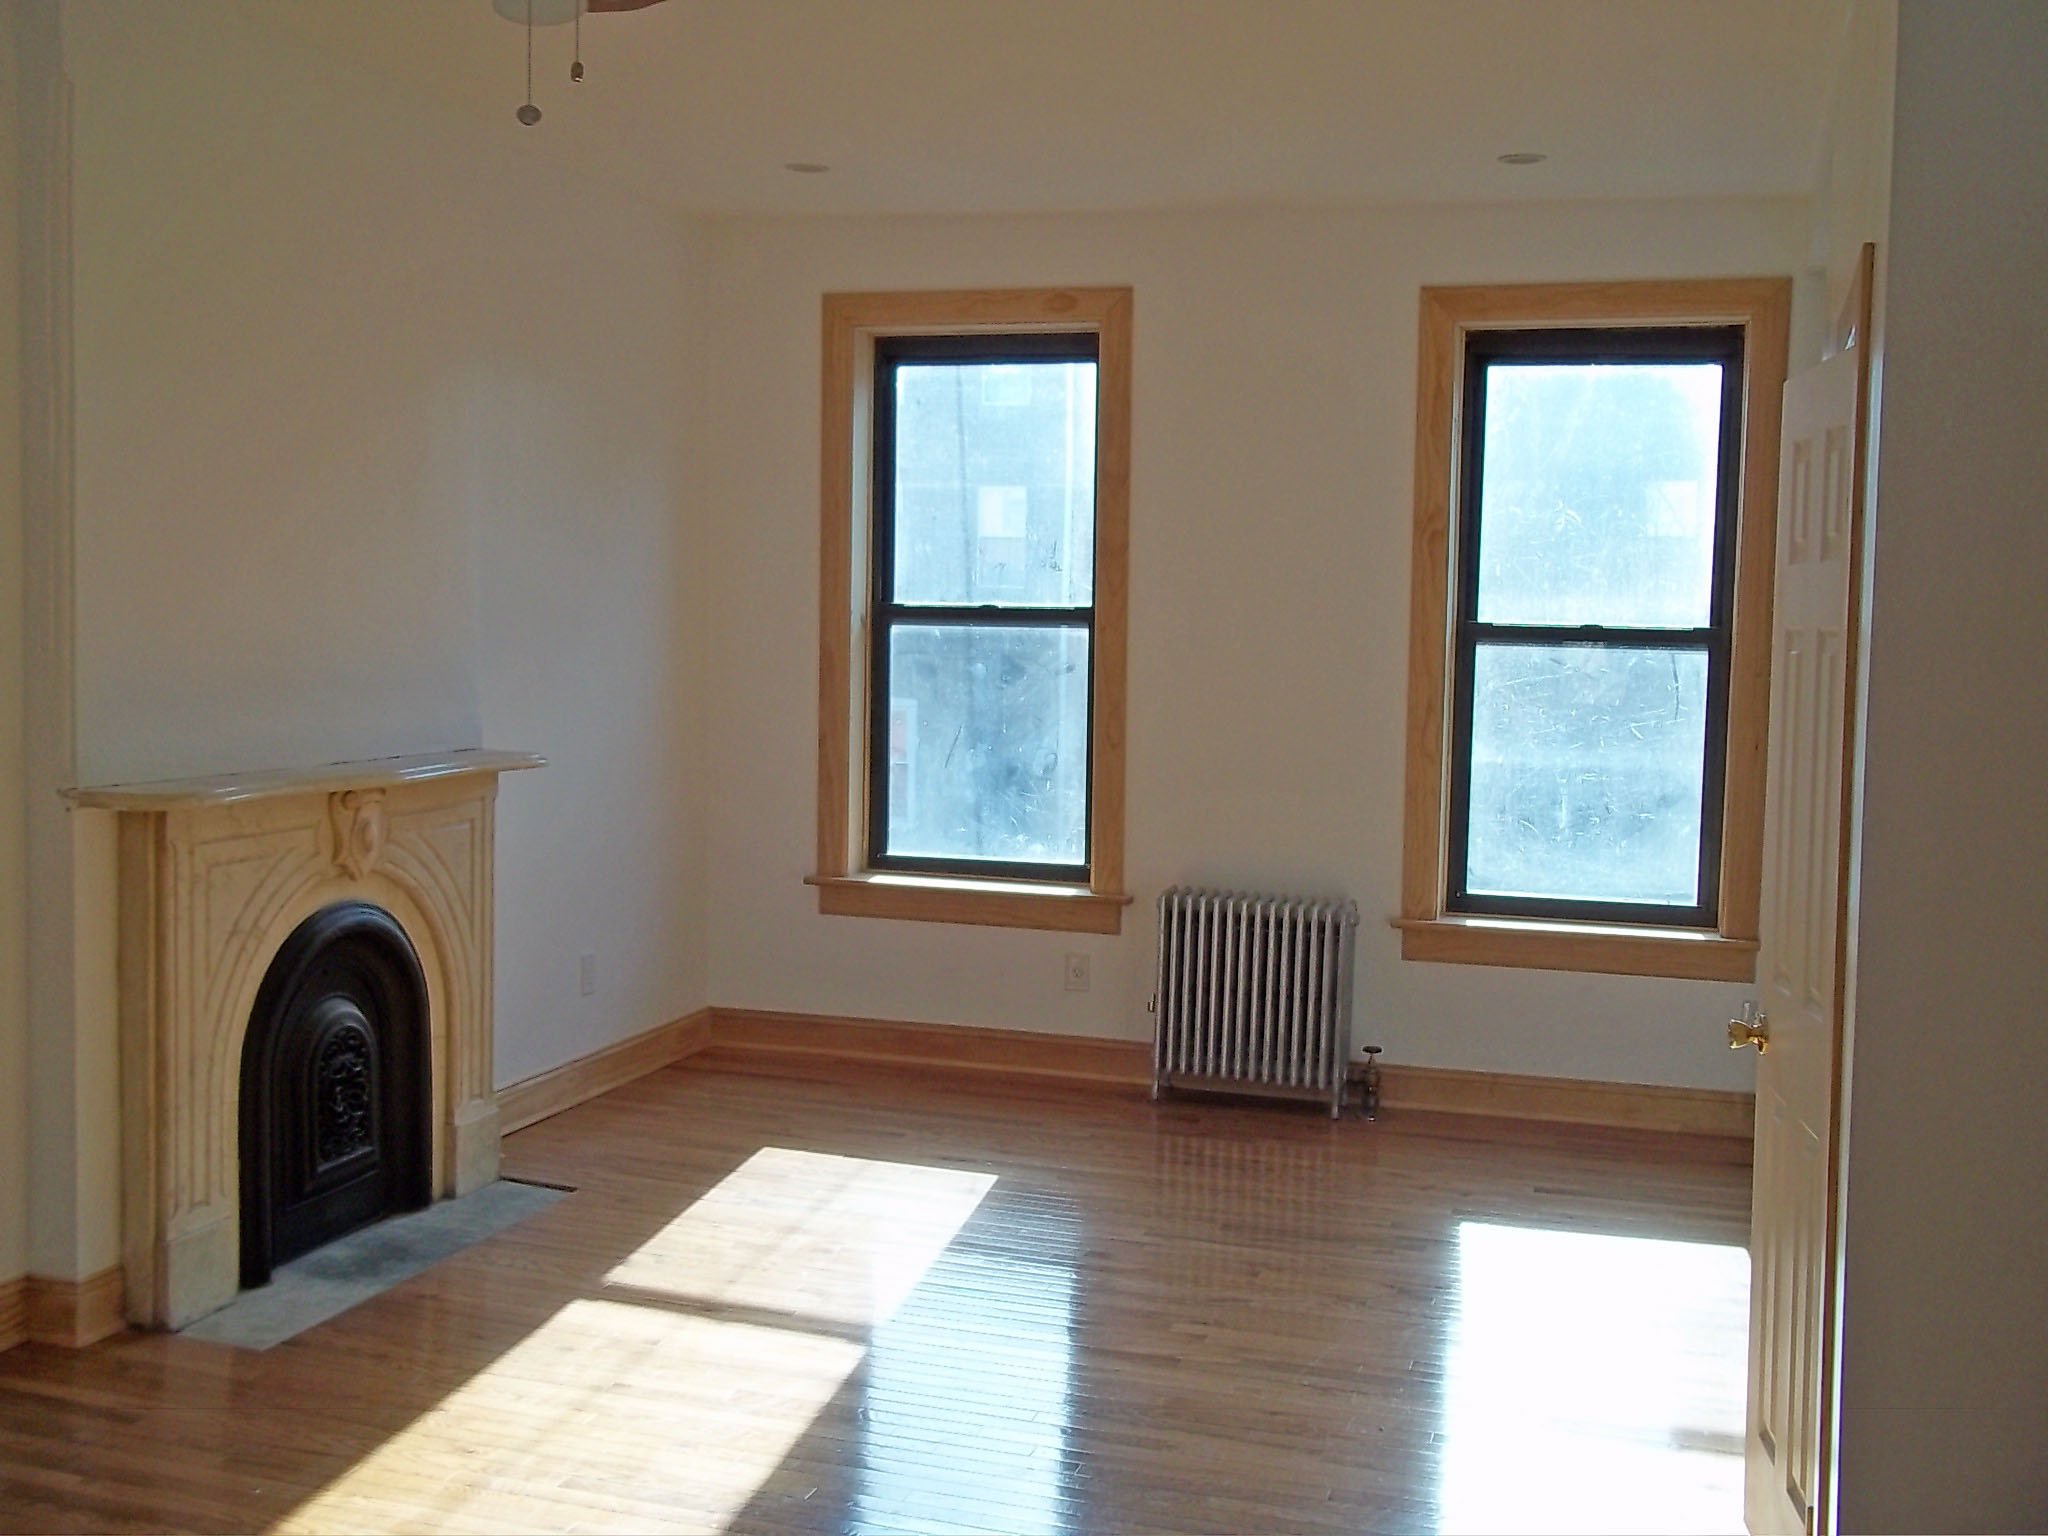 Bedford stuyvesant 1 bedroom apartment for rent brooklyn for 1 bedroom apartments for sale nyc